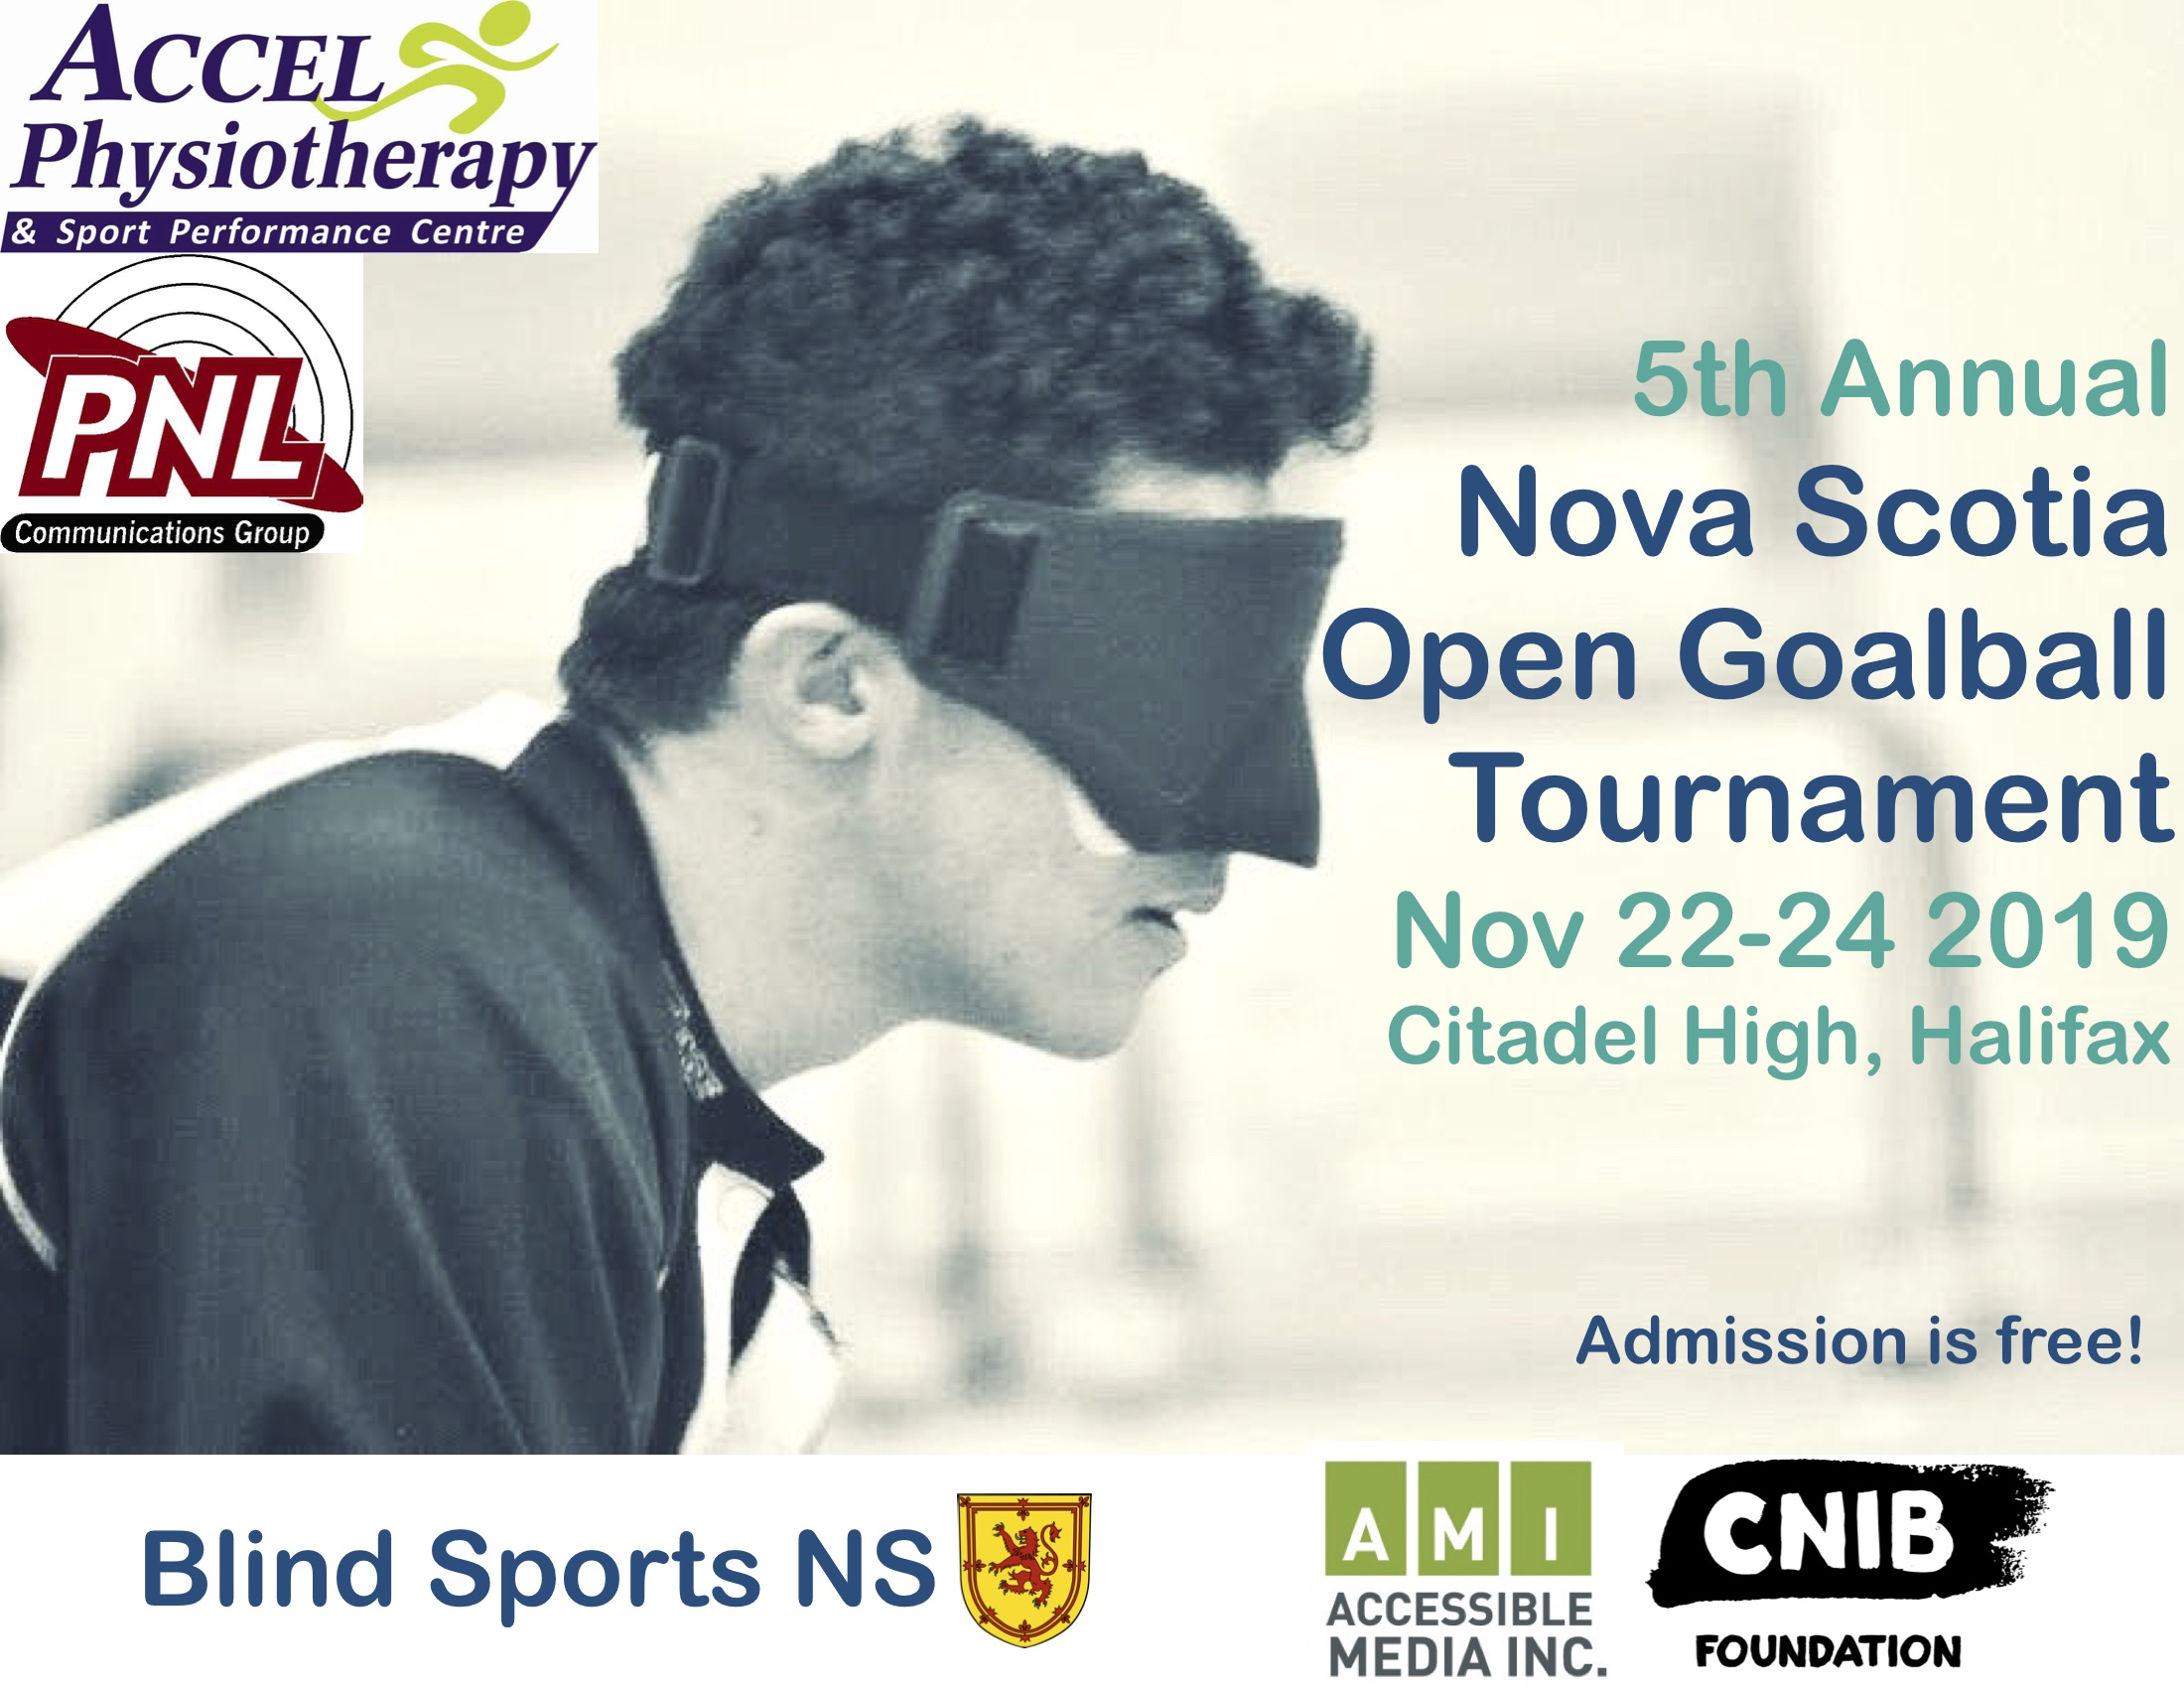 Poster Description: A shoulders up profile photo of a person wearing goalball eyeshades in deep focus. 5th Annual Nova Scotia Open Goalball Tournament Nov 22-24 2019 Citadel High, Halifax Admission is Free! Blind Sports NS and provincial coat of arms lion in yellow. Featured Sponsors logos include: Accel Physiotherapy & Sport Performance Centre; PNL Communications Group; Accessible Media Inc; CNIB Foundation.